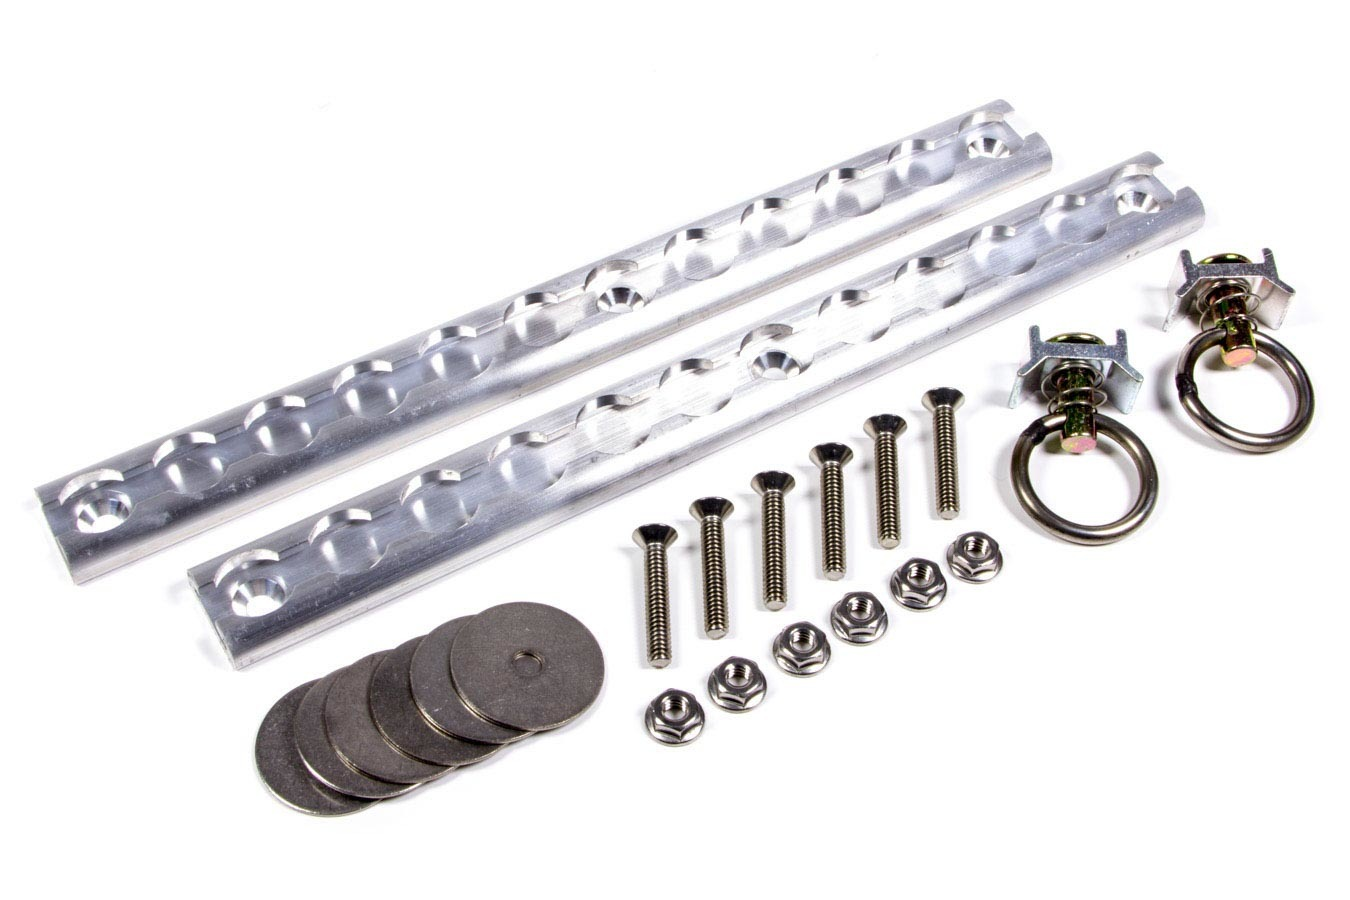 Macs Custom Tie Downs 522124 Tie Down Track Kit, VersaTie, Two 2 ft Long Tracks, Two Ring Tie Downs, Hardware Included, Aluminum / Steel, Natural / Cadmium, Kit